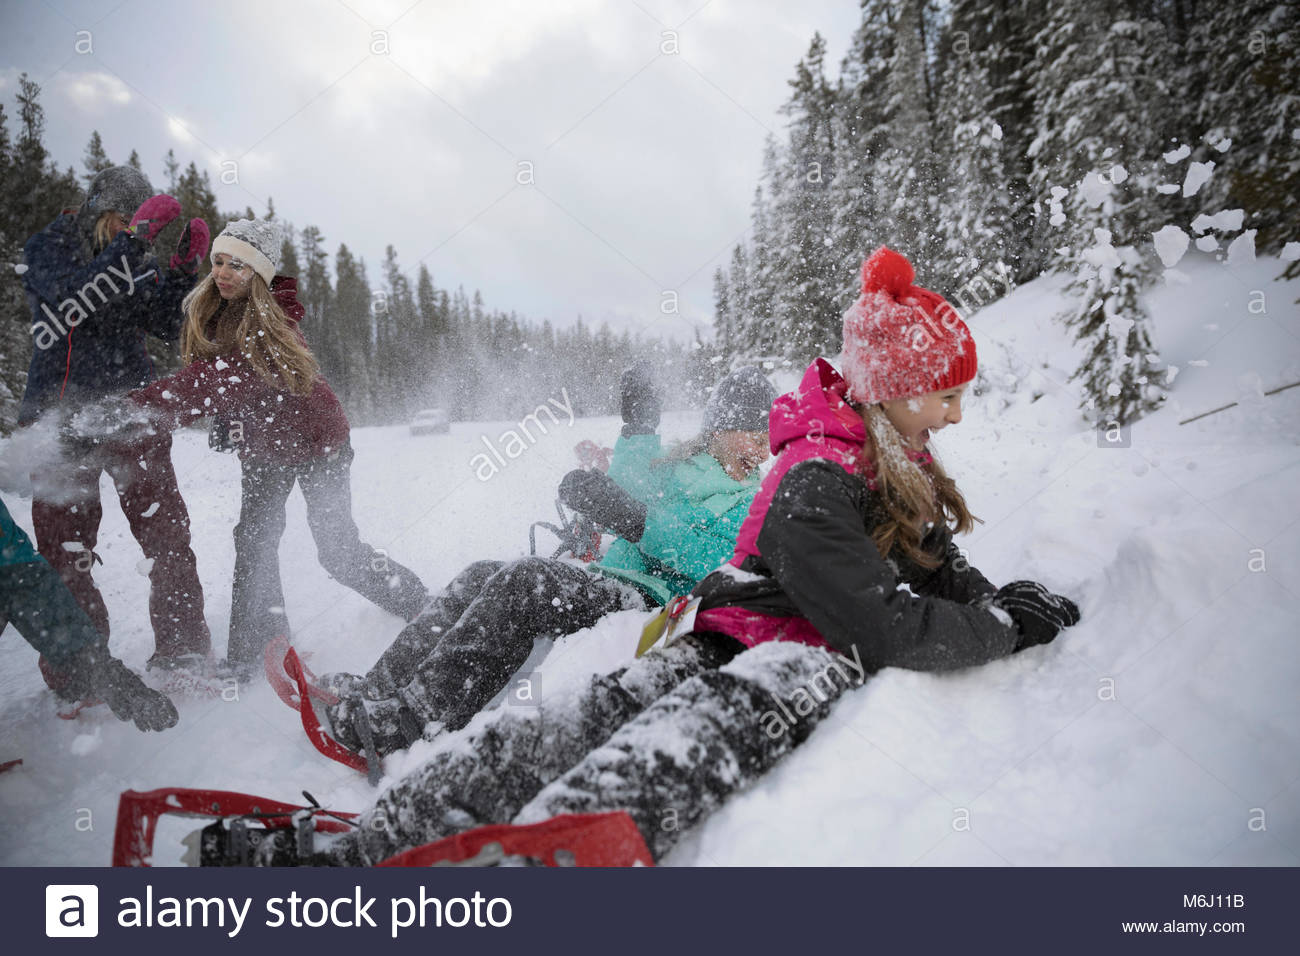 Playful family snowshoeing, enjoying snowball fight - Stock Image